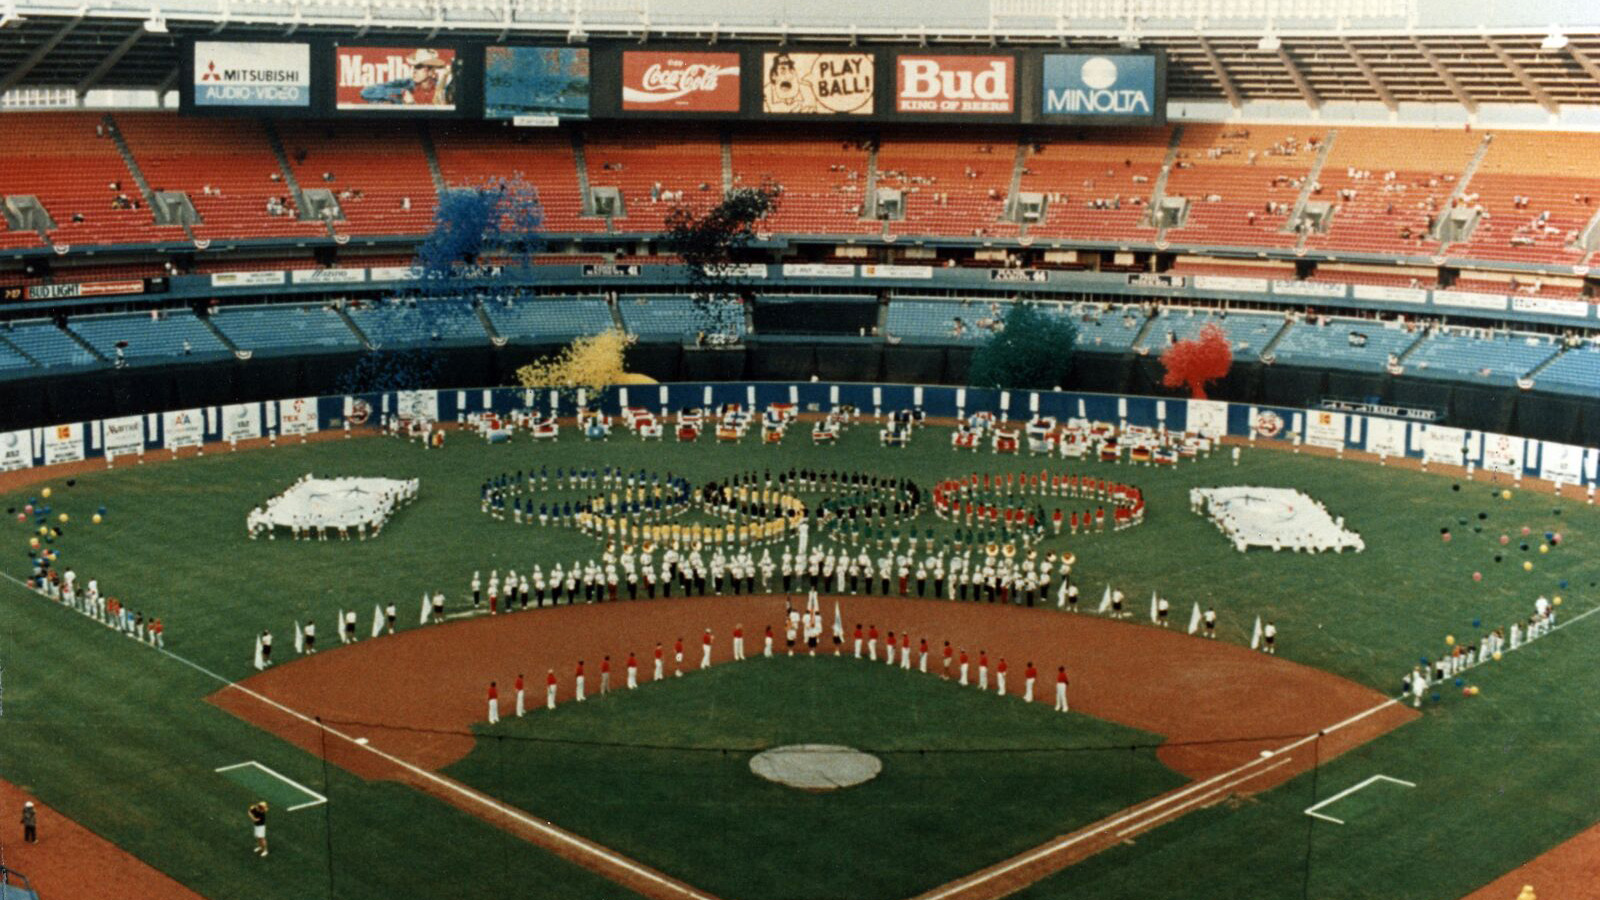 The band performing on the field of Atlanta-Fulton County stadium to promote the olympics.